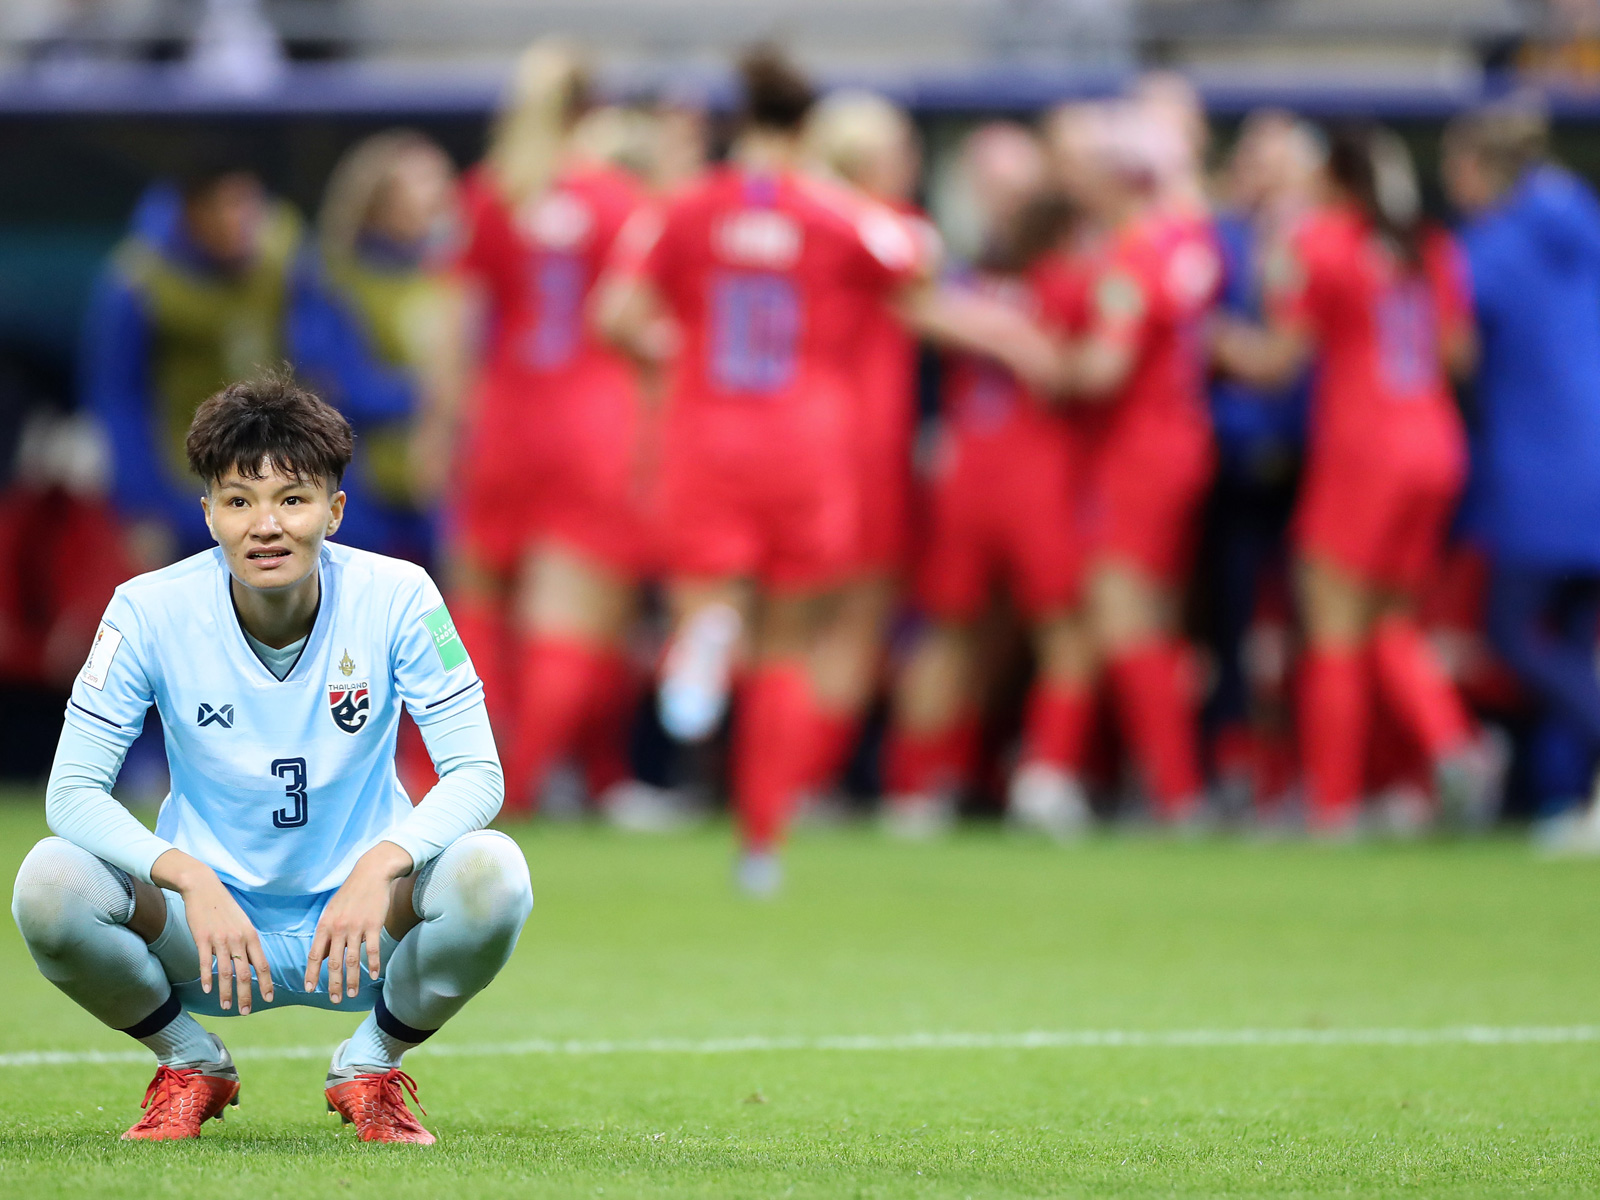 Natthakarn Chinwong crouches as the USA celebrates a goal at the Women's World Cup